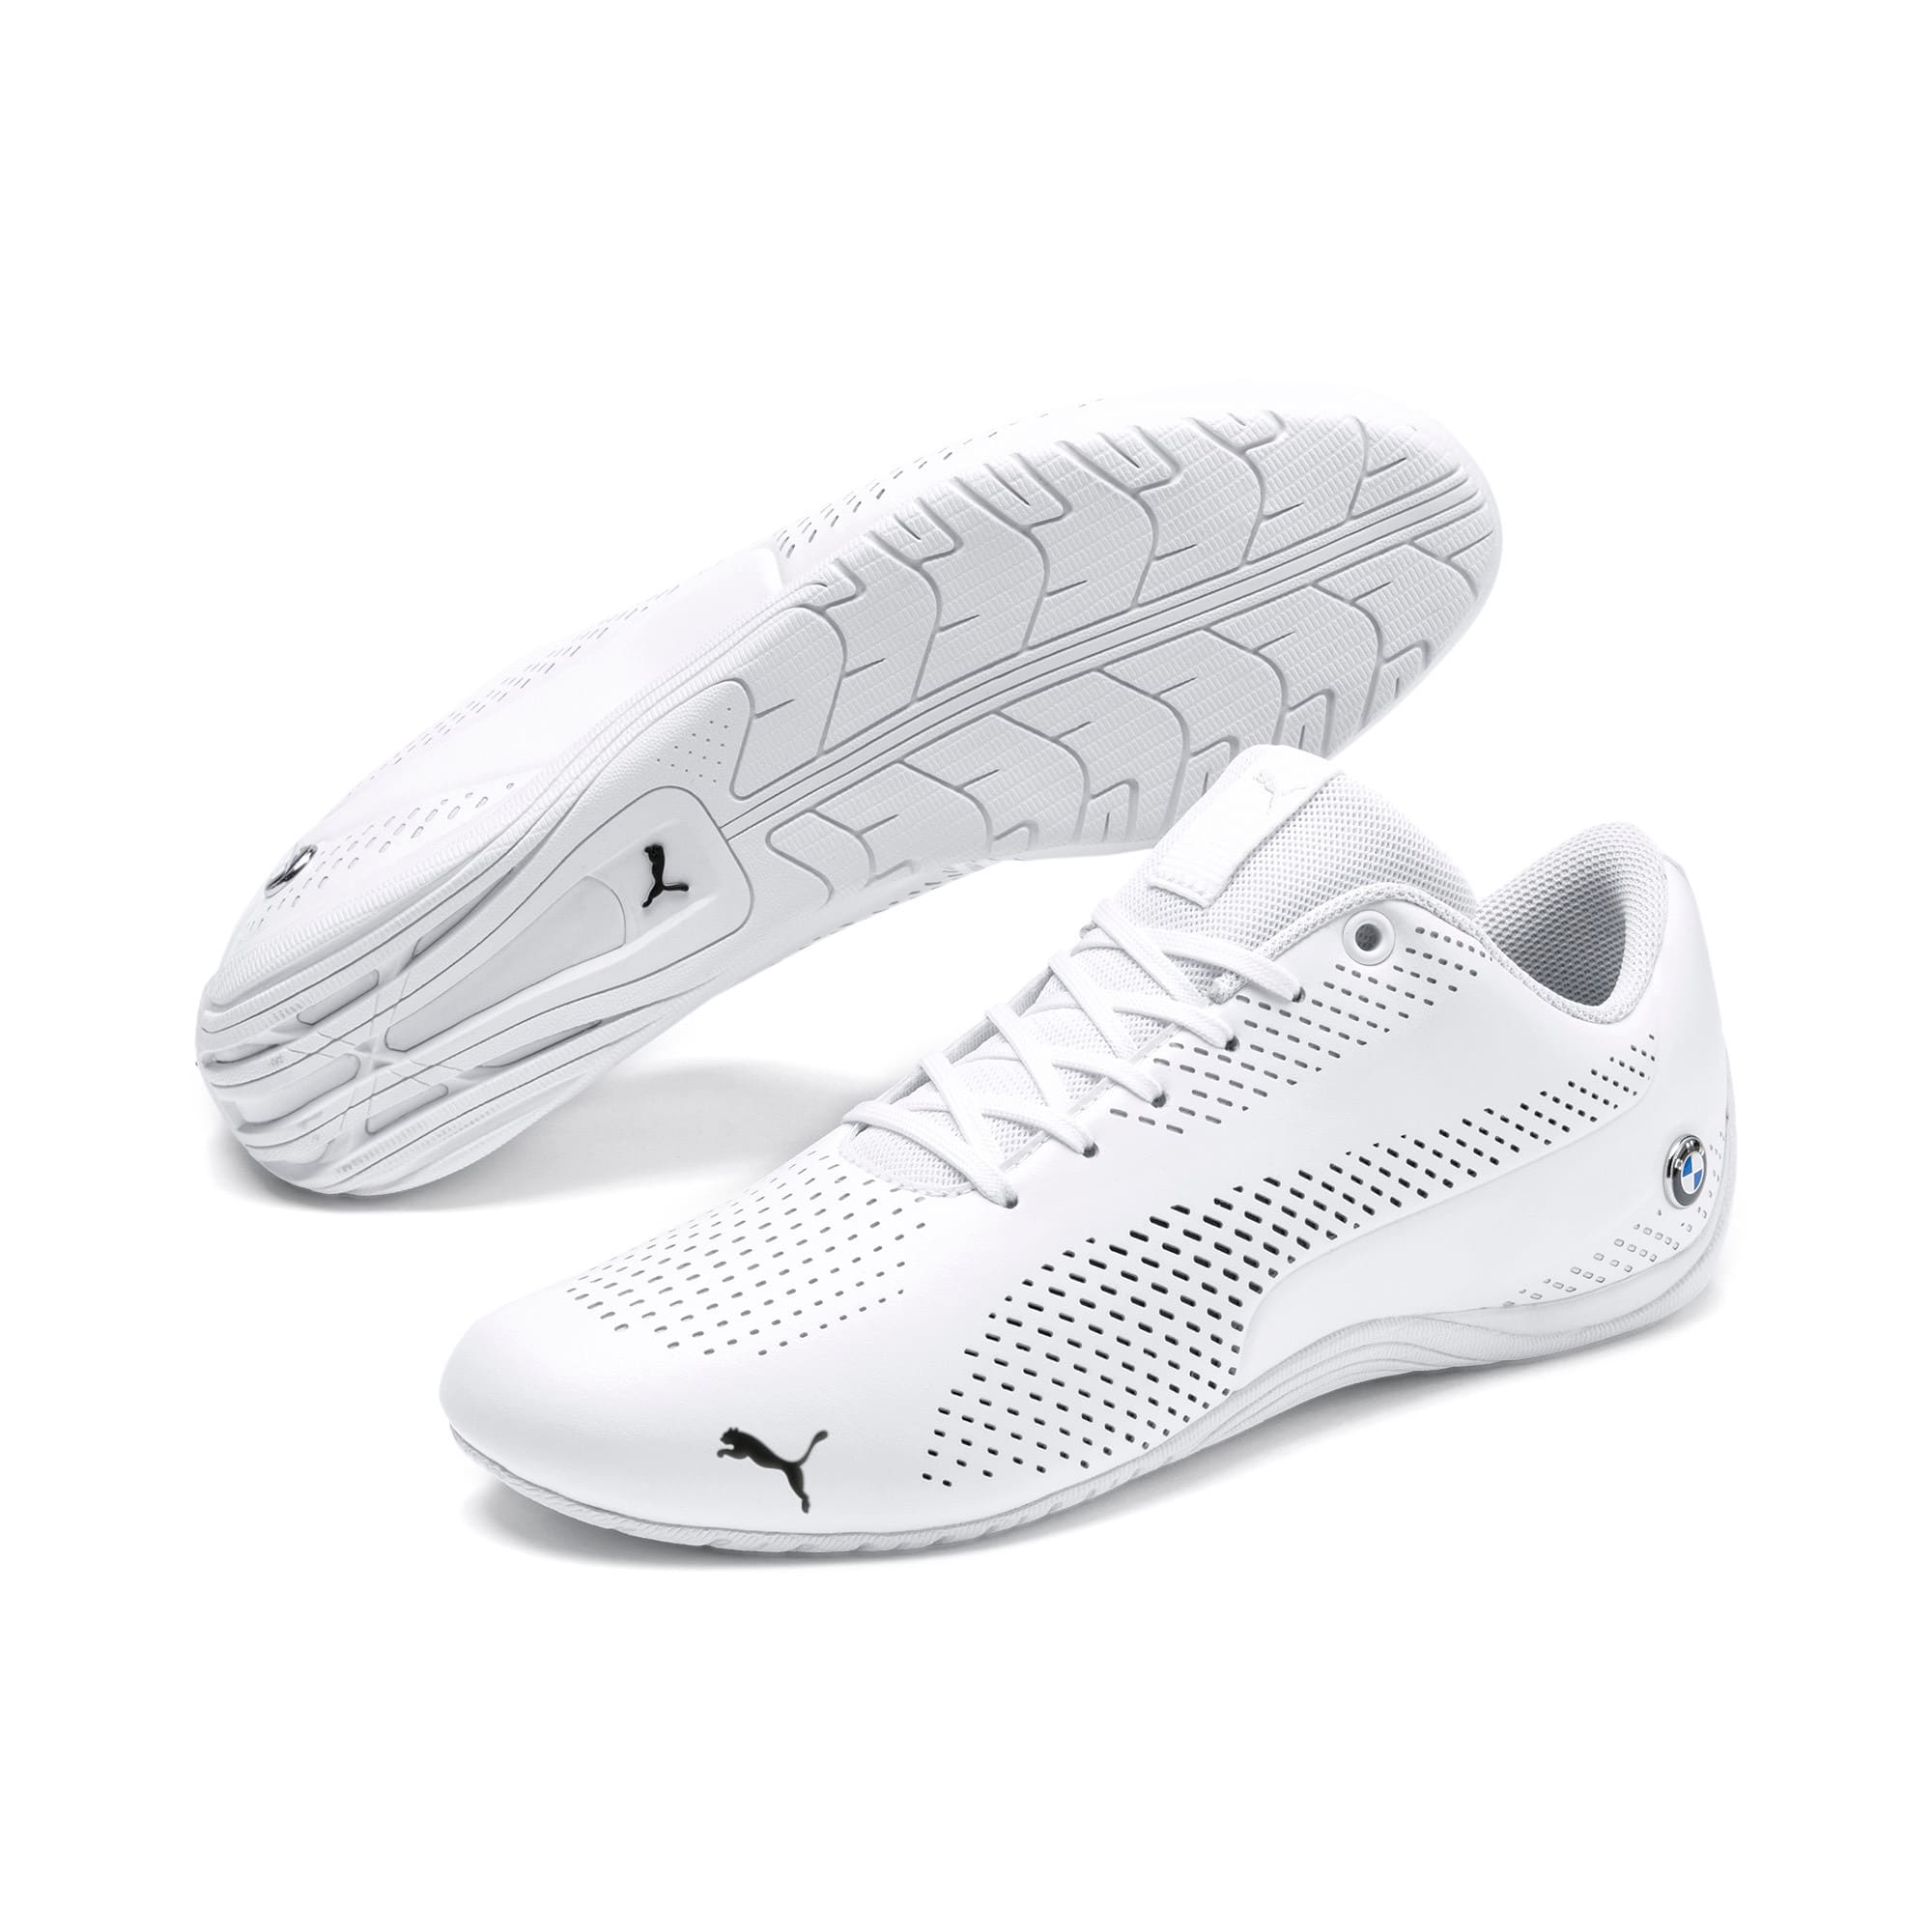 Thumbnail 2 of BMW M Motorsport Drift Cat 5 Ultra II Shoes, Puma White-Puma Black, medium